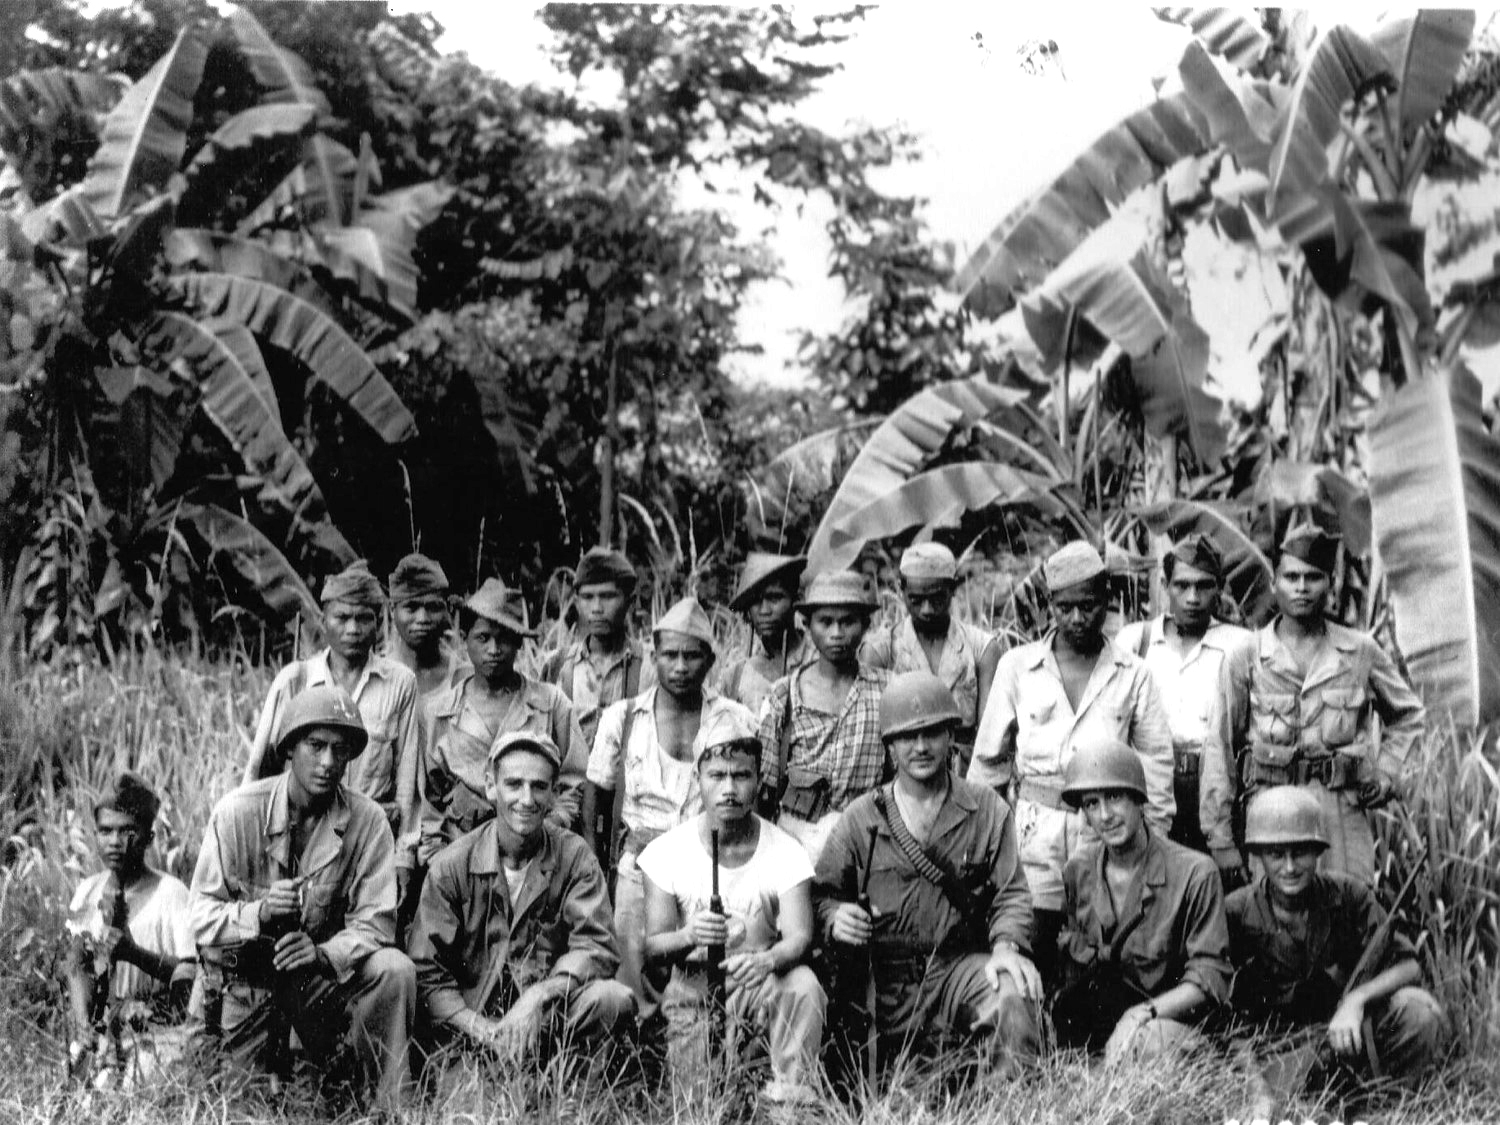 Filipino and American troops posing together in the jungle foliage.